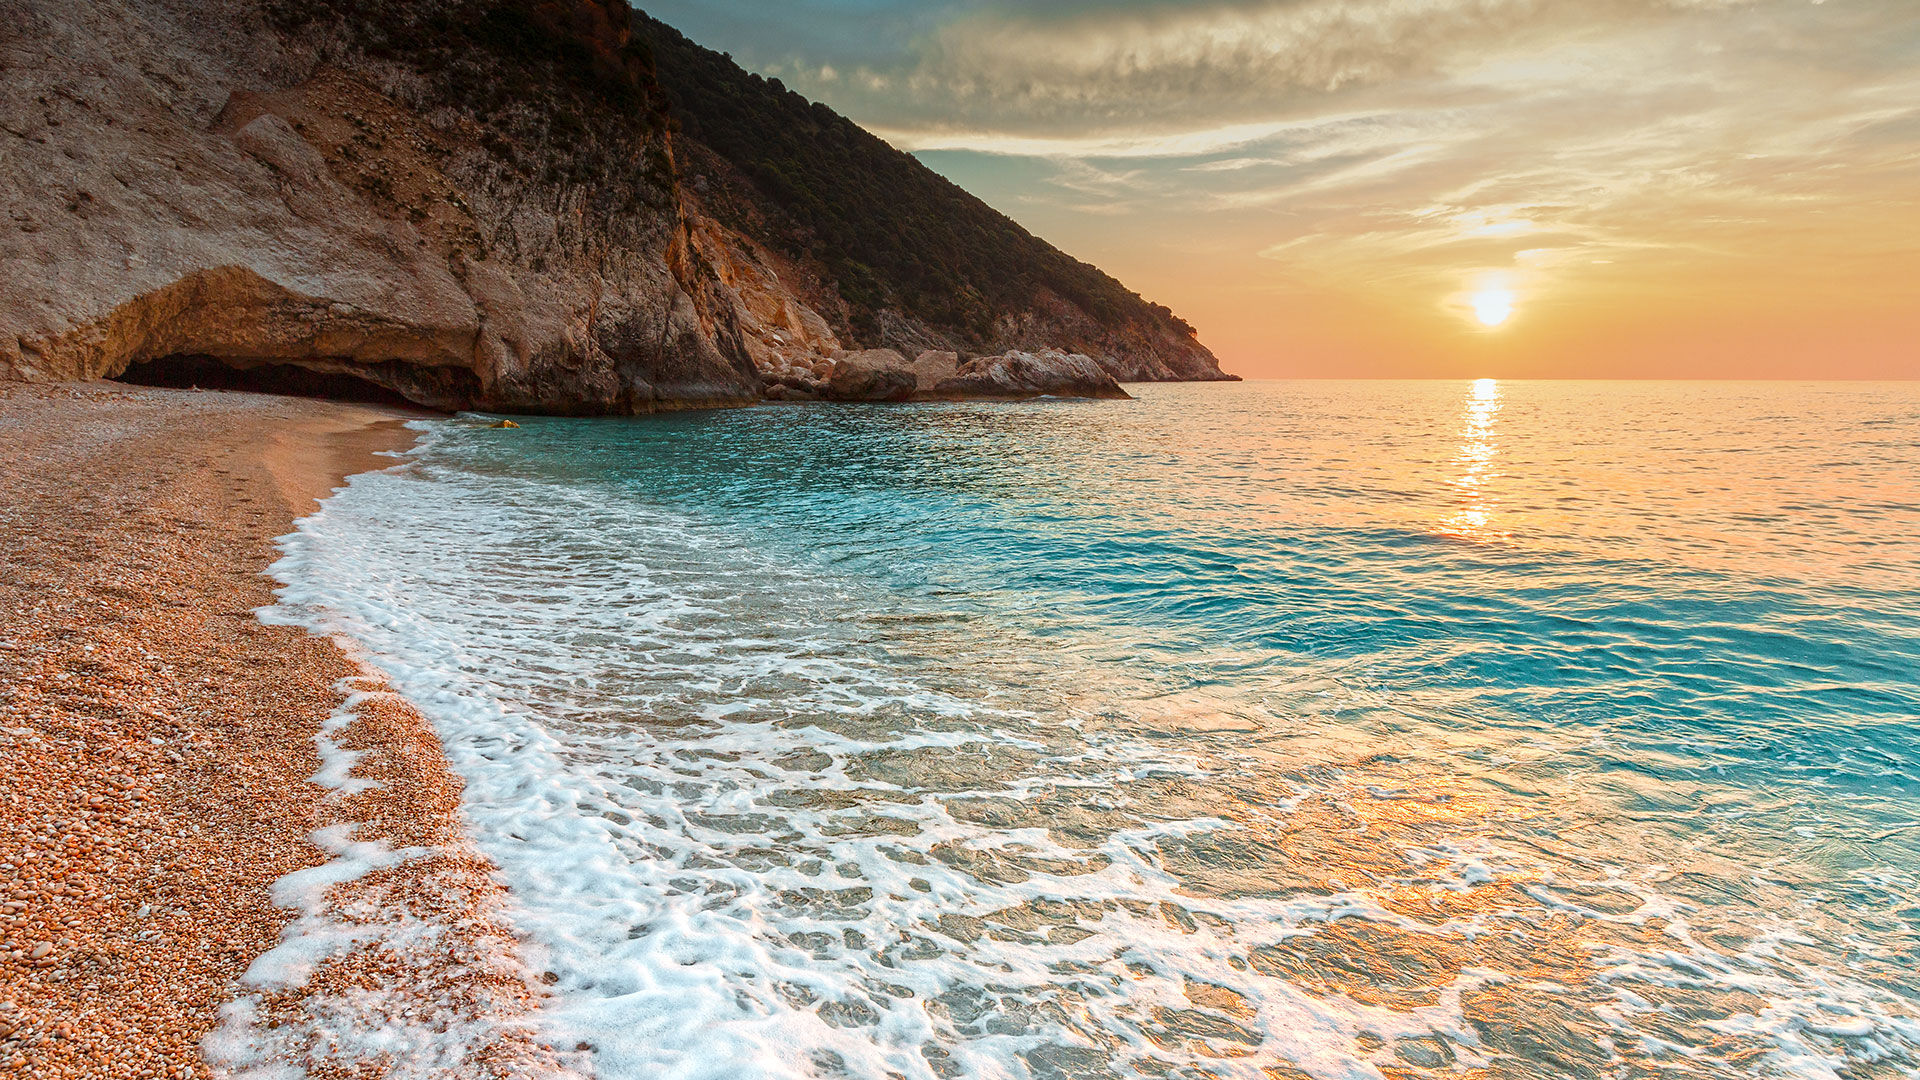 Facing west, Myrtos rewards you with magical sunsets